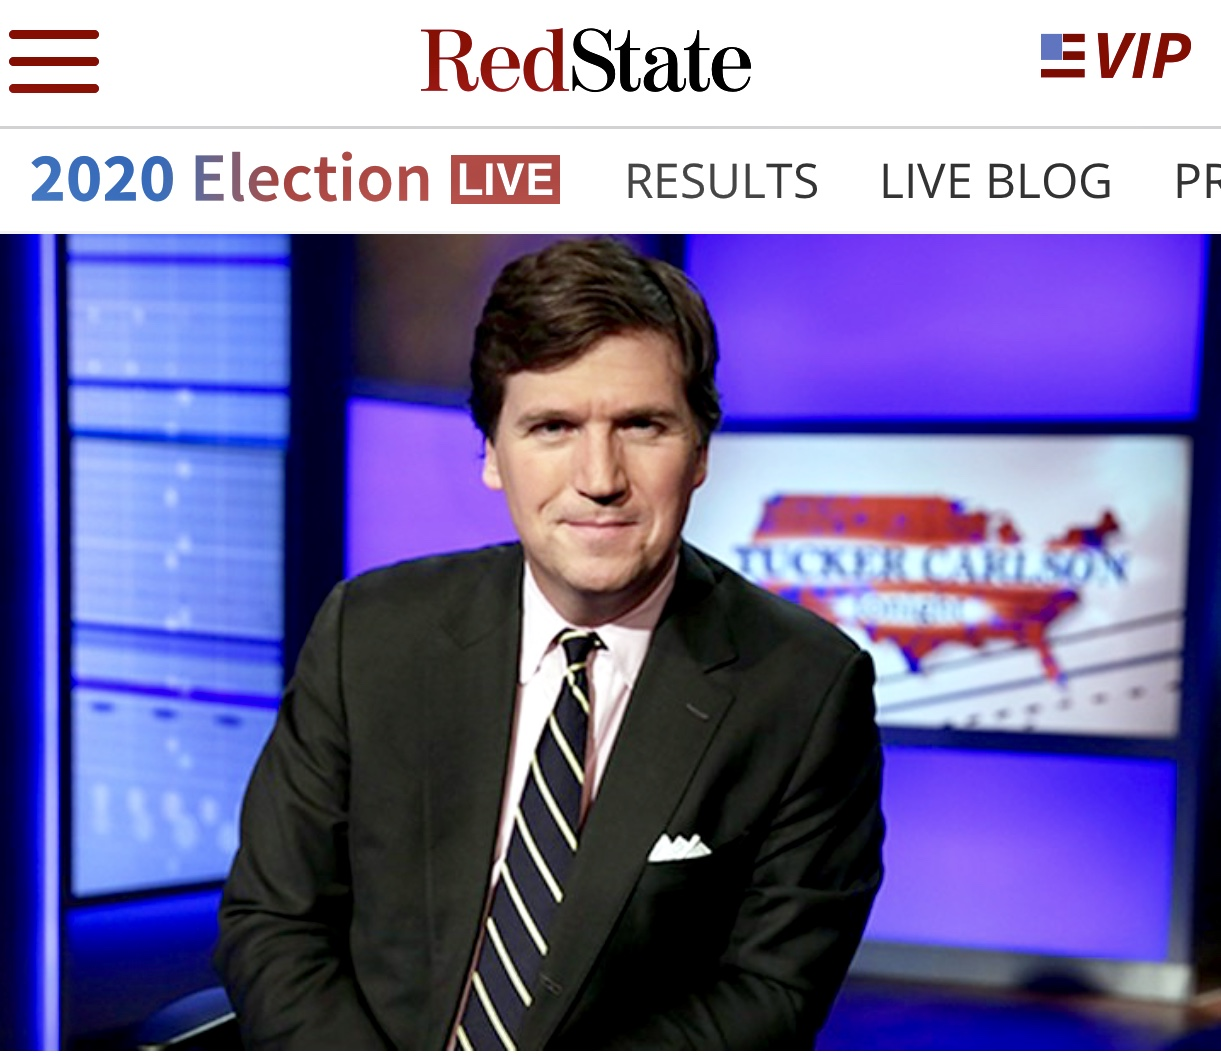 Civil War: Tucker Carlson Hits His Own Network in Epic Post-Election Monologue